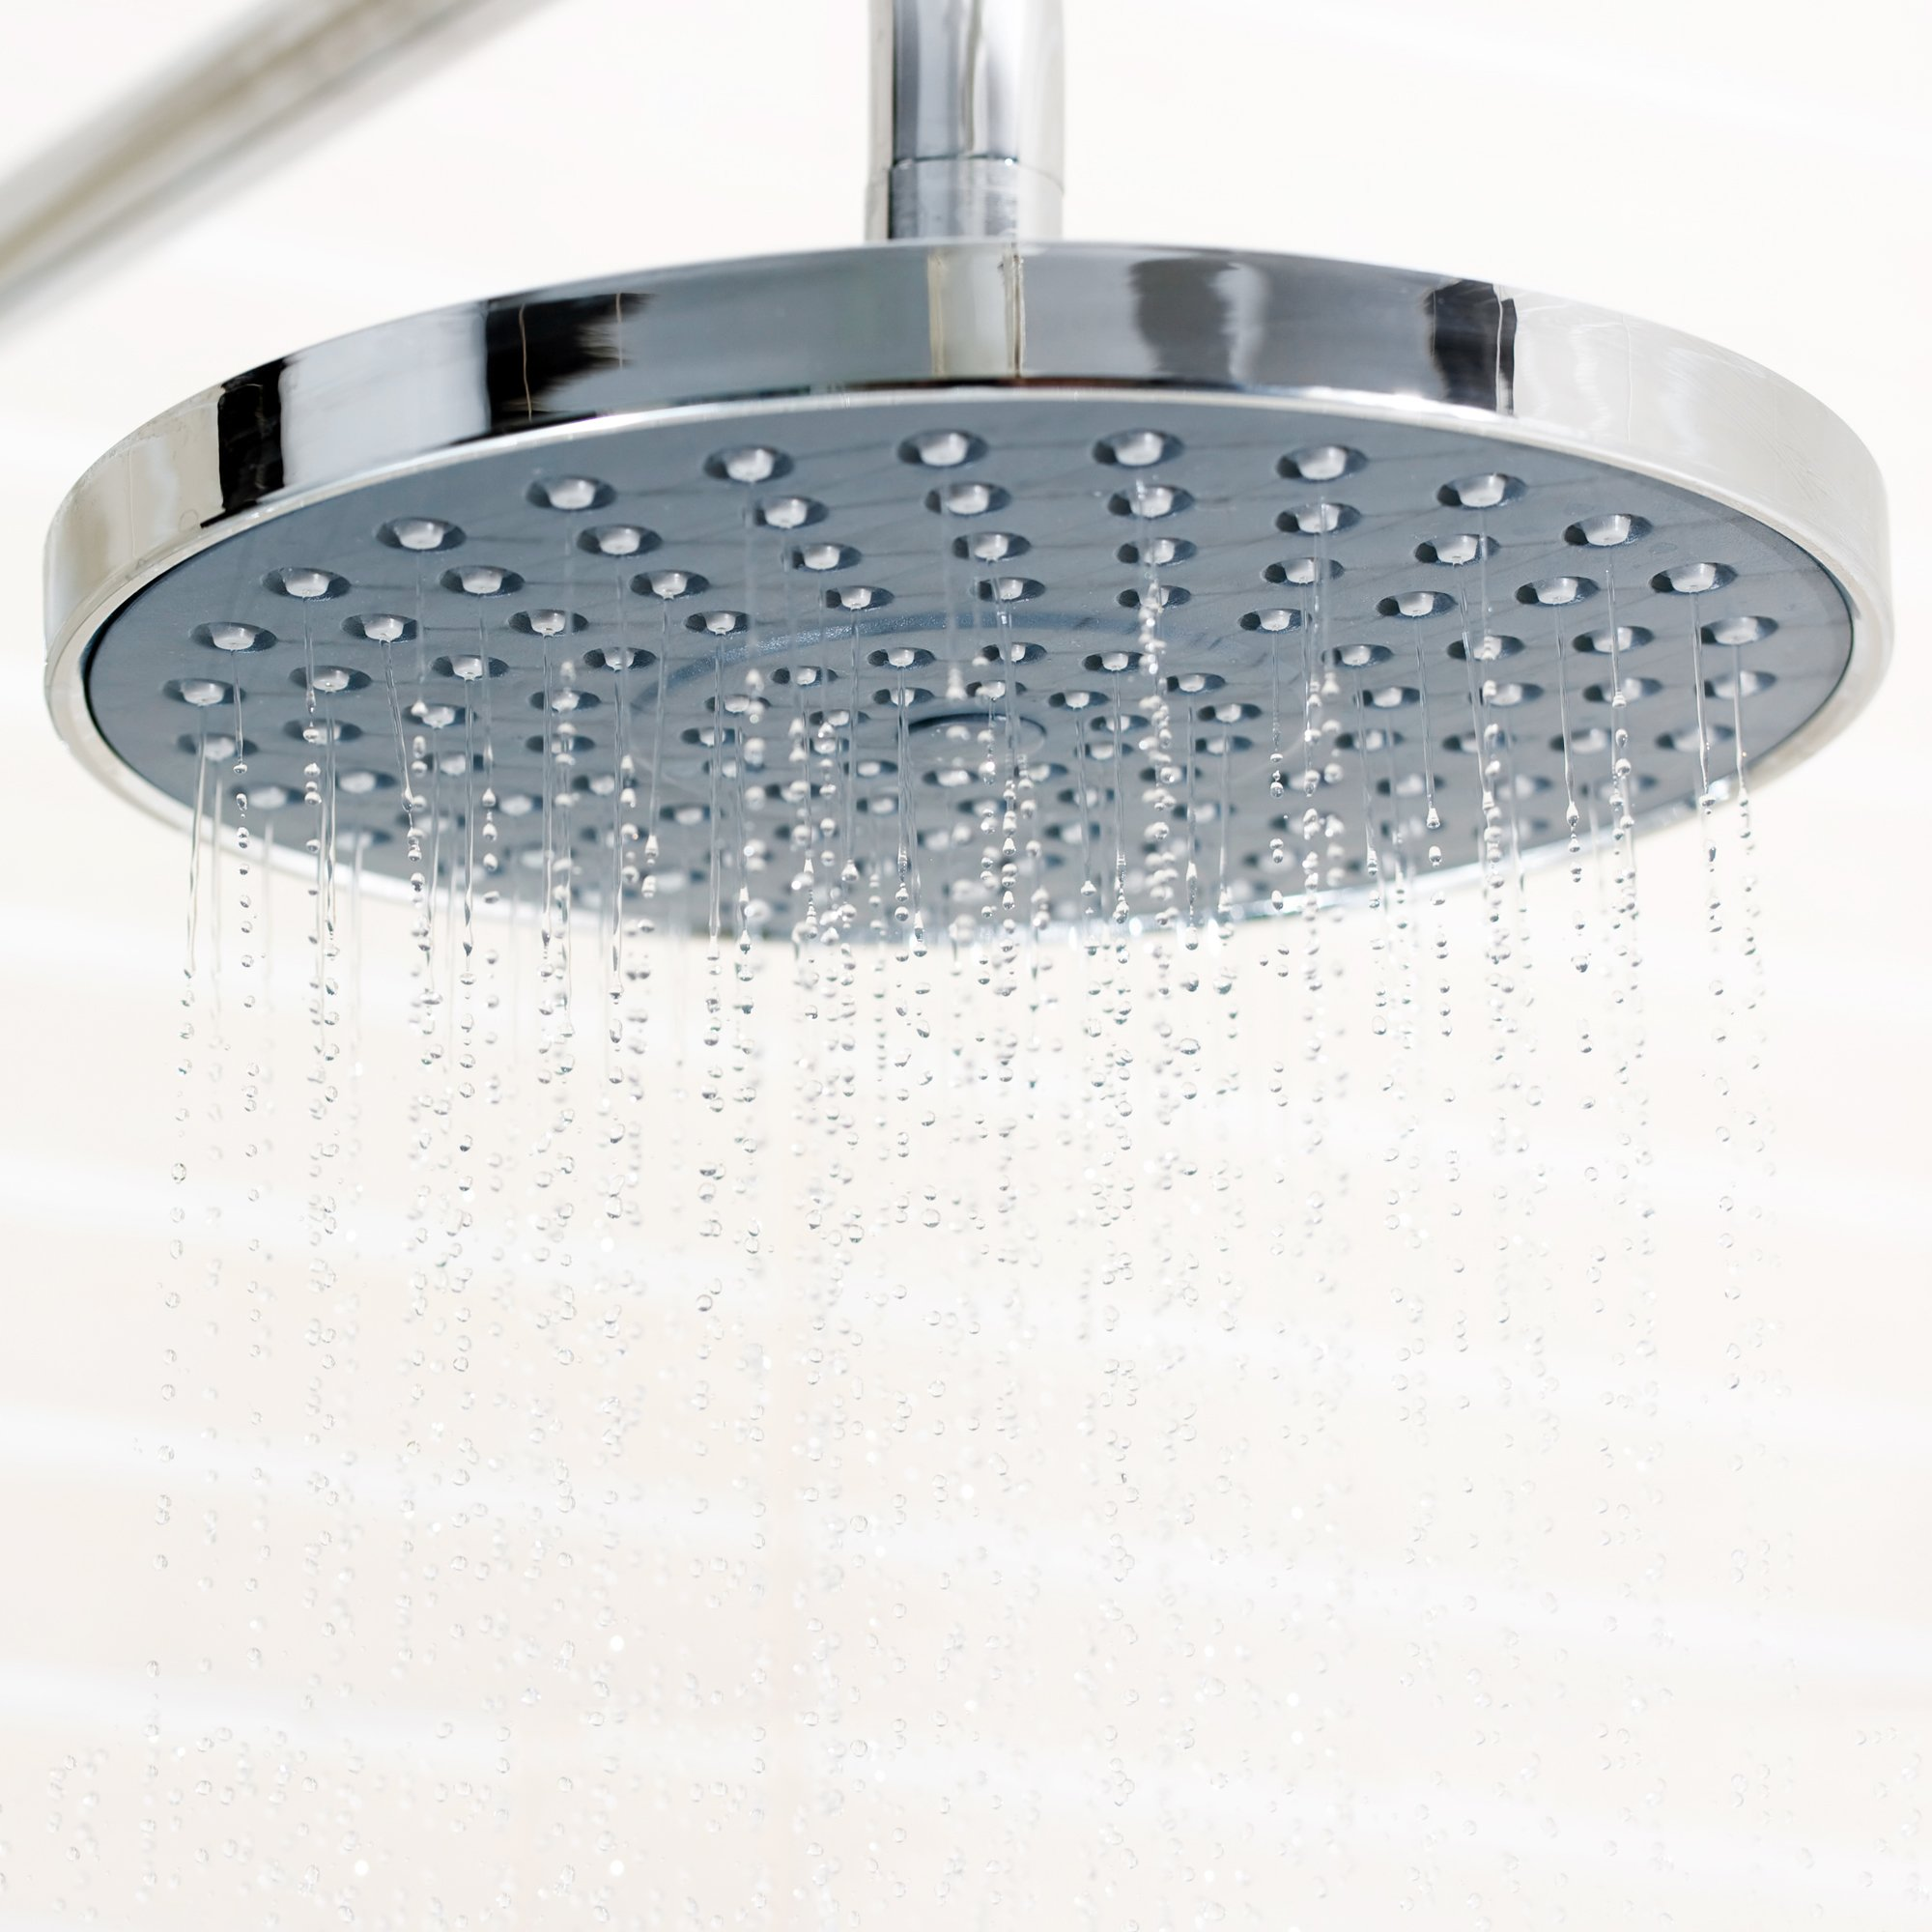 decorating cool showers simple ideas kohler head waterfall at shower design